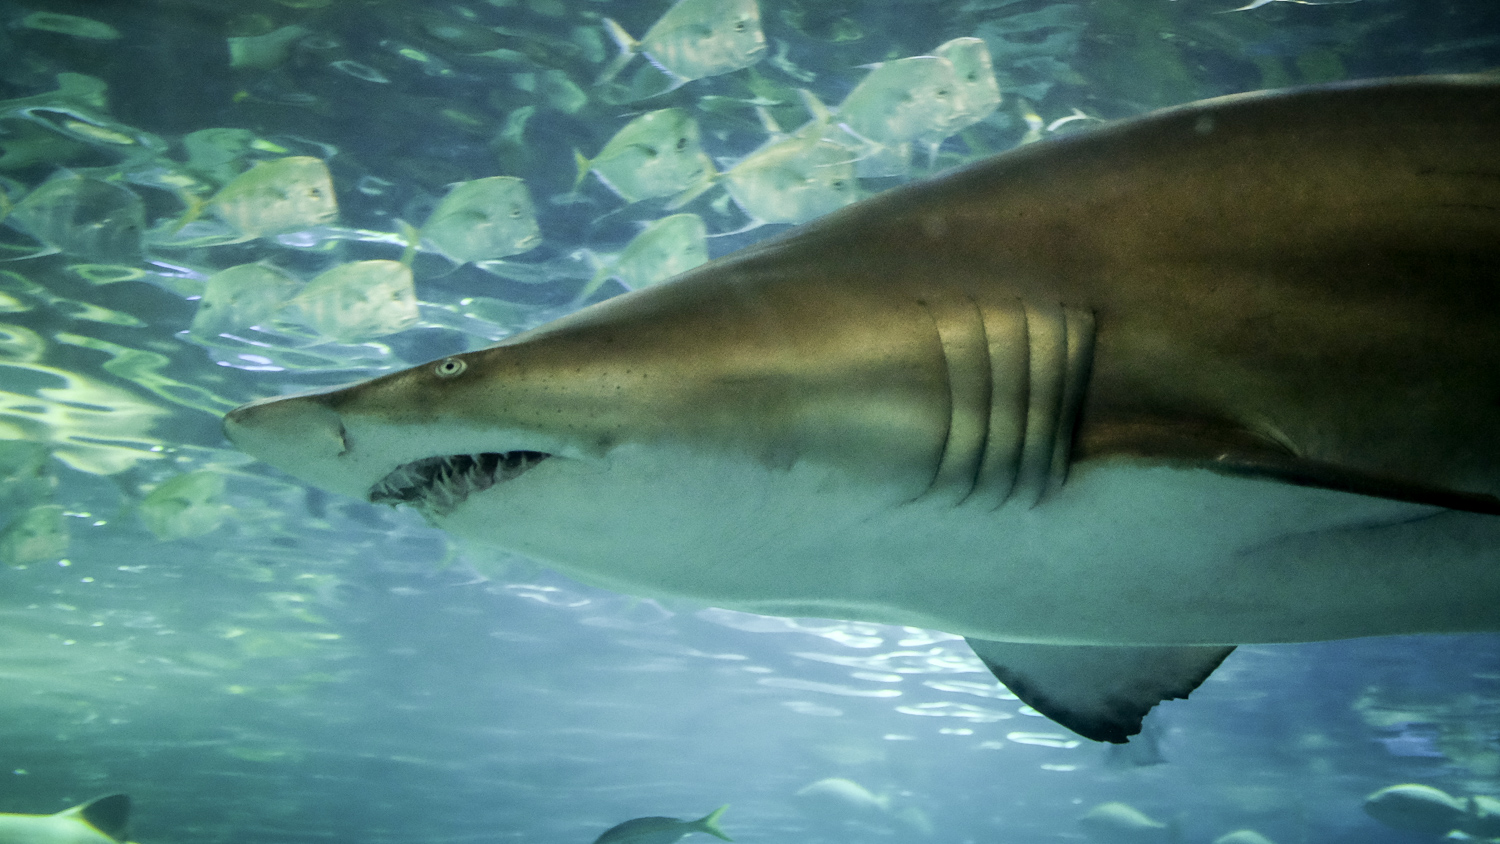 Close-up photo of a shark - How to Take Clear and Creative Photos at Aquariums